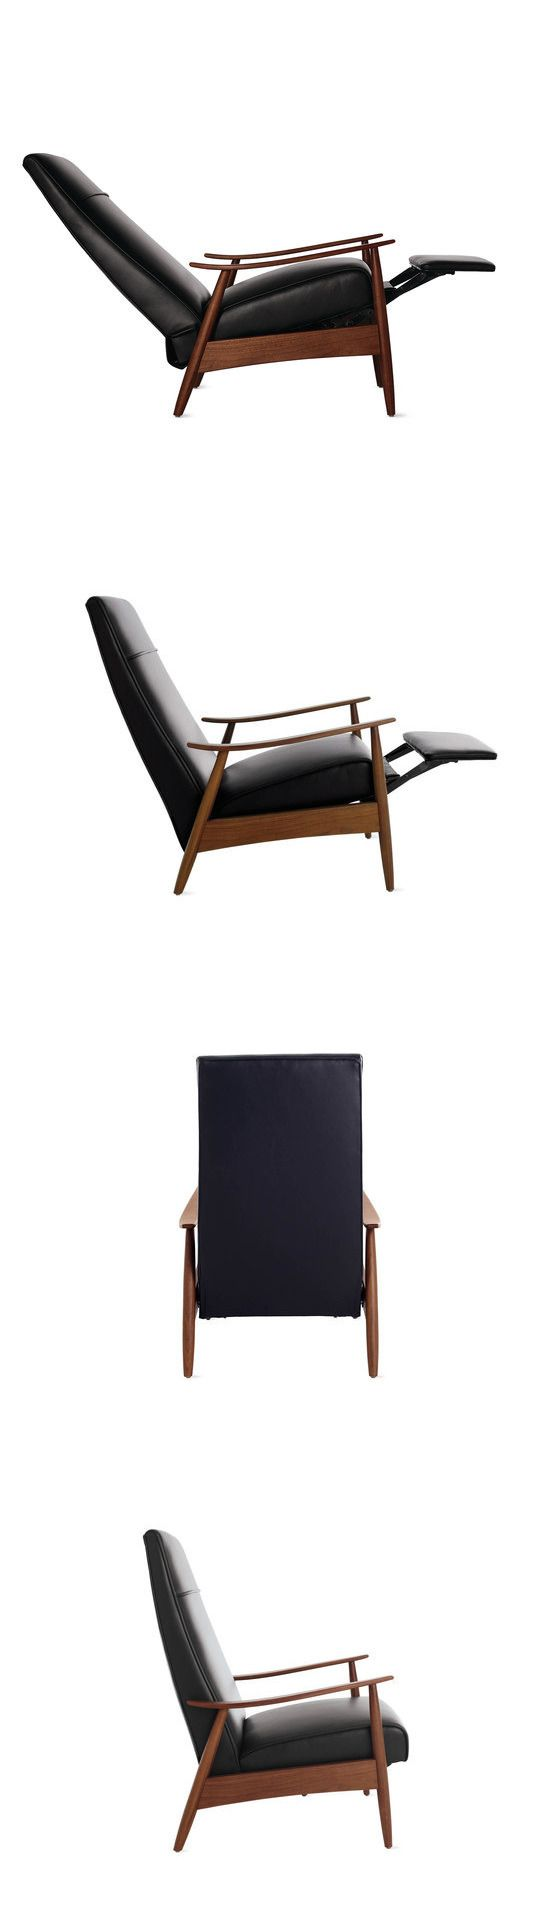 Saw this chair at DWR today. Fantastic. I'd really like to find a place for it in the MH.  Too expensive for casita. It's going on sale 3/2/16 for 15% off. I picked up leather samples and will send to you. Comes stock in black and the camel I pinned previously. I'm sending camel & bone samples.